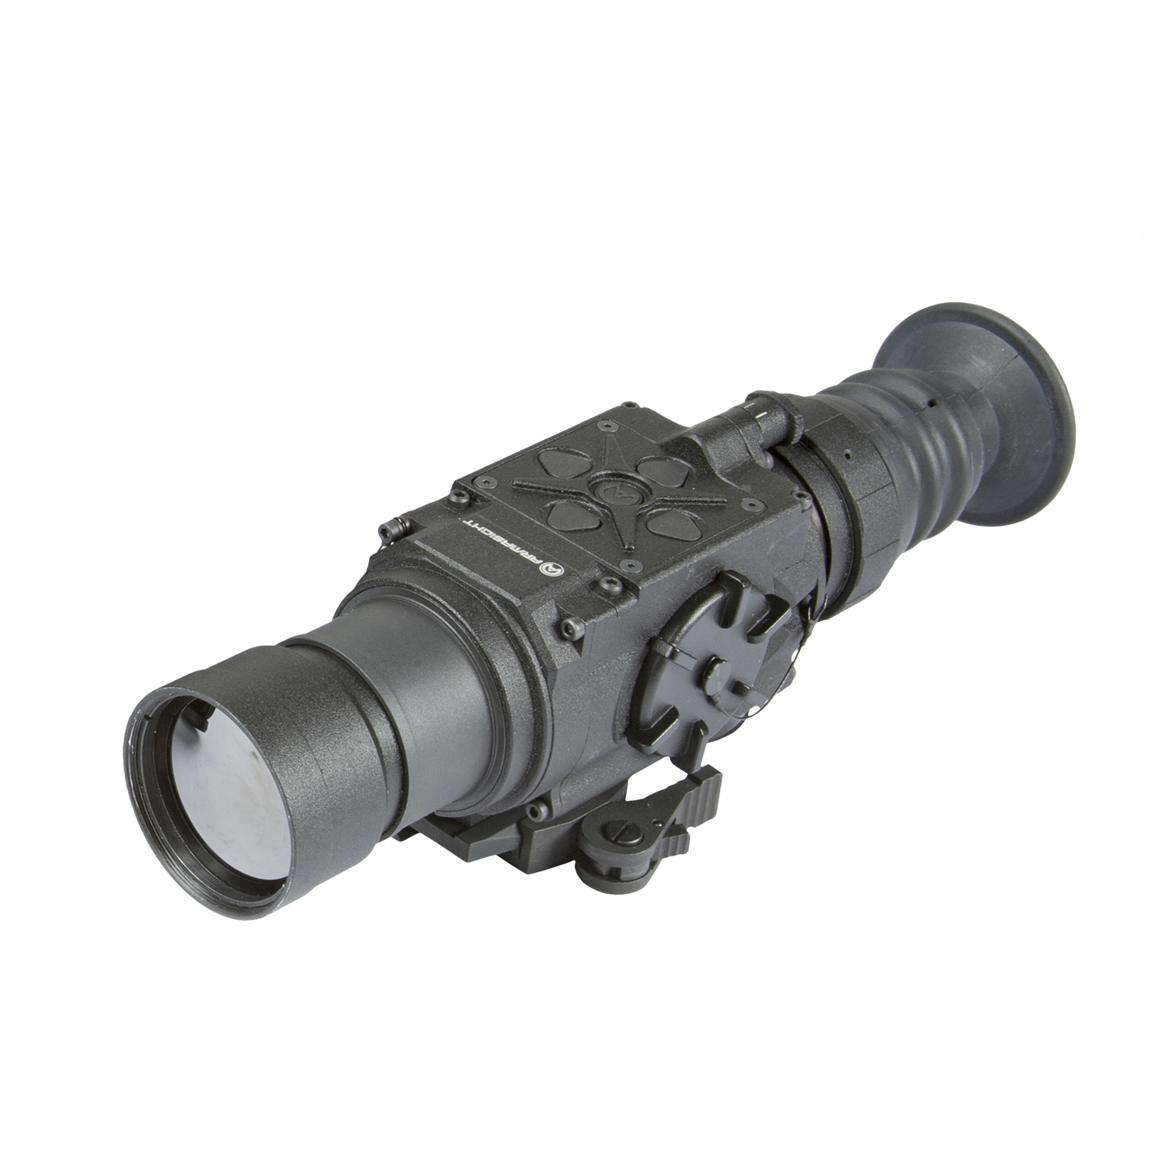 Armasight® Zeus 2X Thermal Imaging Rifle Scope